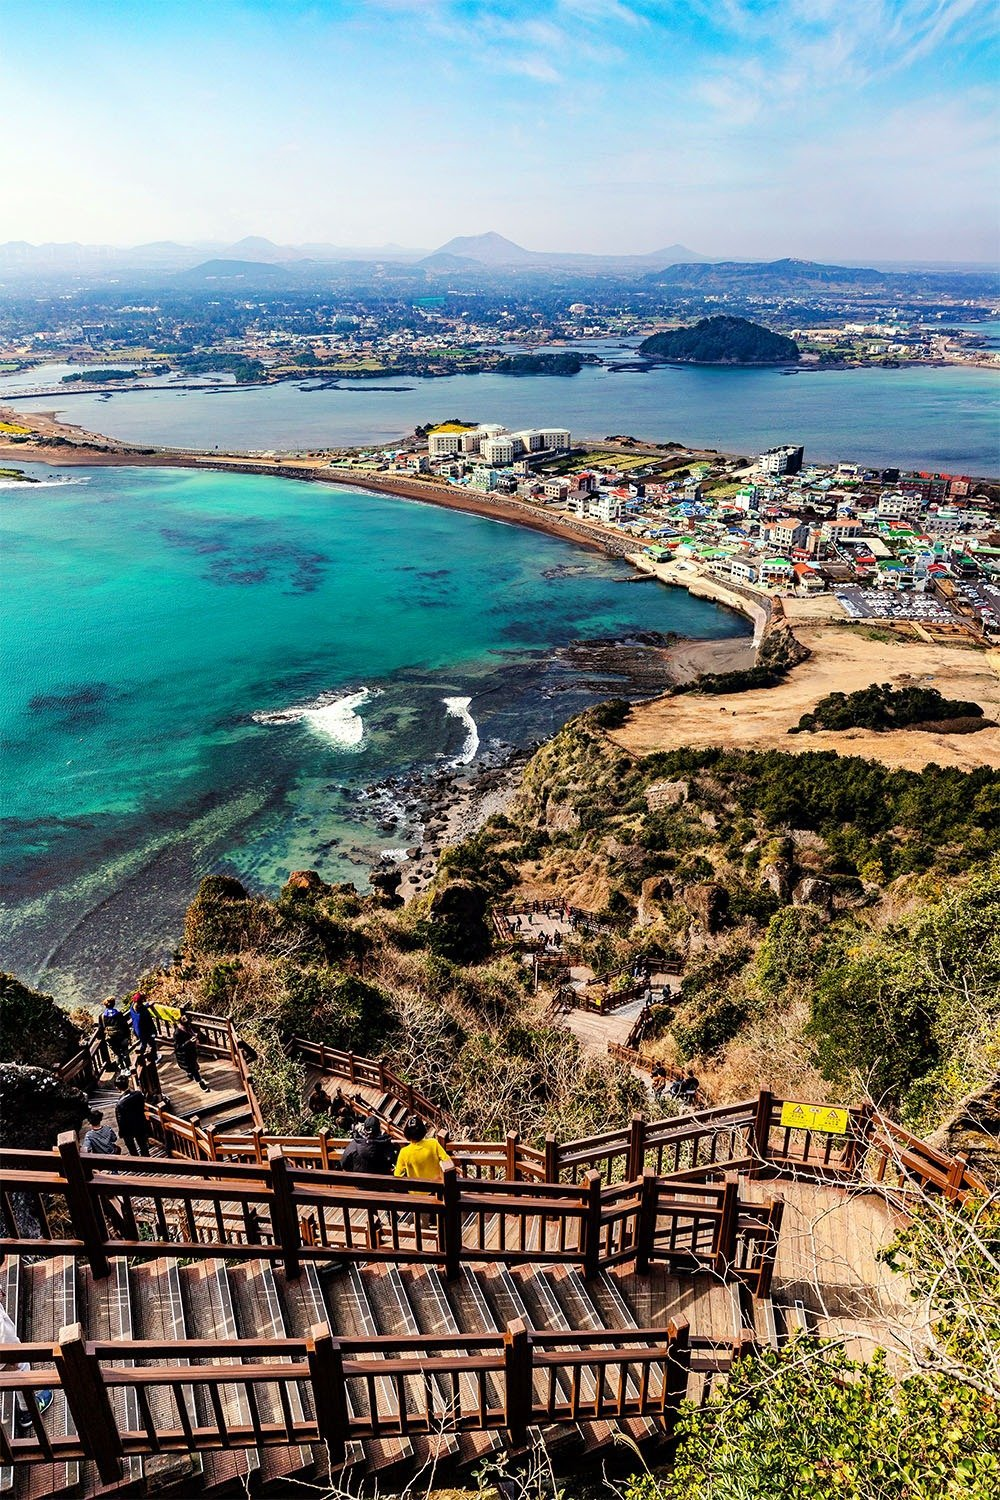 Drive east and go up the Seongsan Ilchulbong for amazing views of Jeju Island. Here's your essential Jeju travel guide and itinerary.